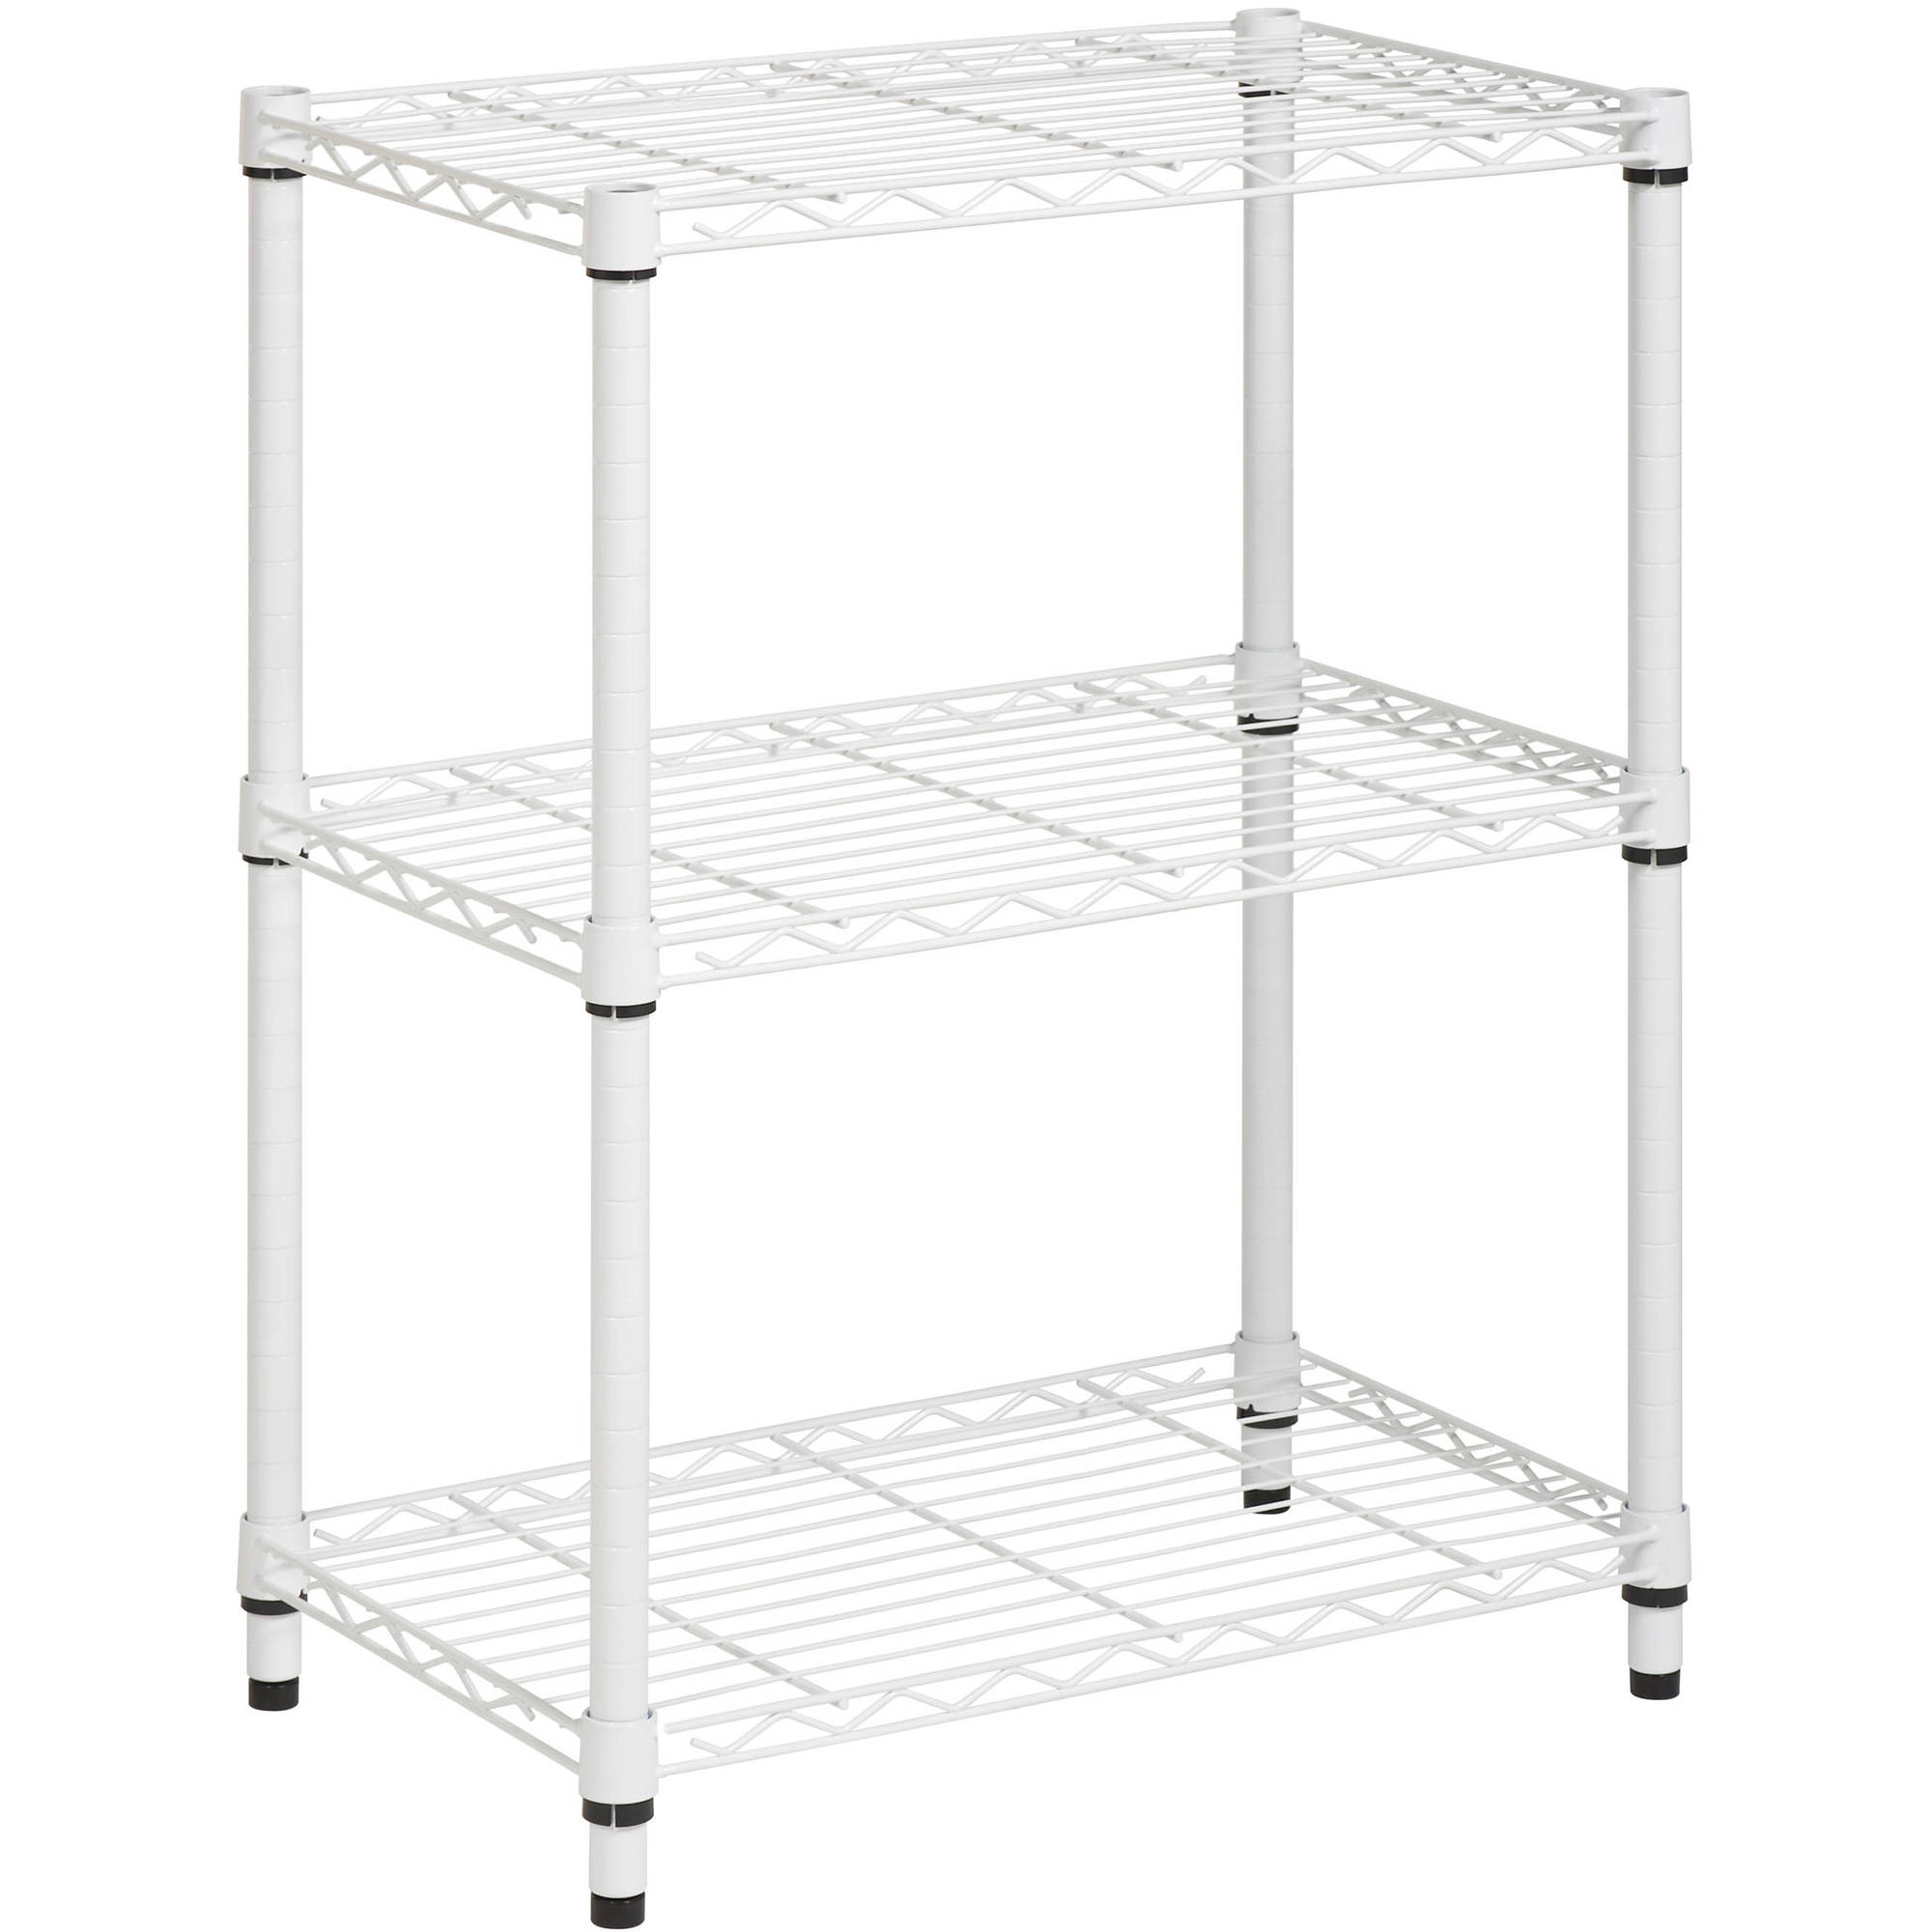 Honey Can Do 3 Tier Shelving Unit White Walmart